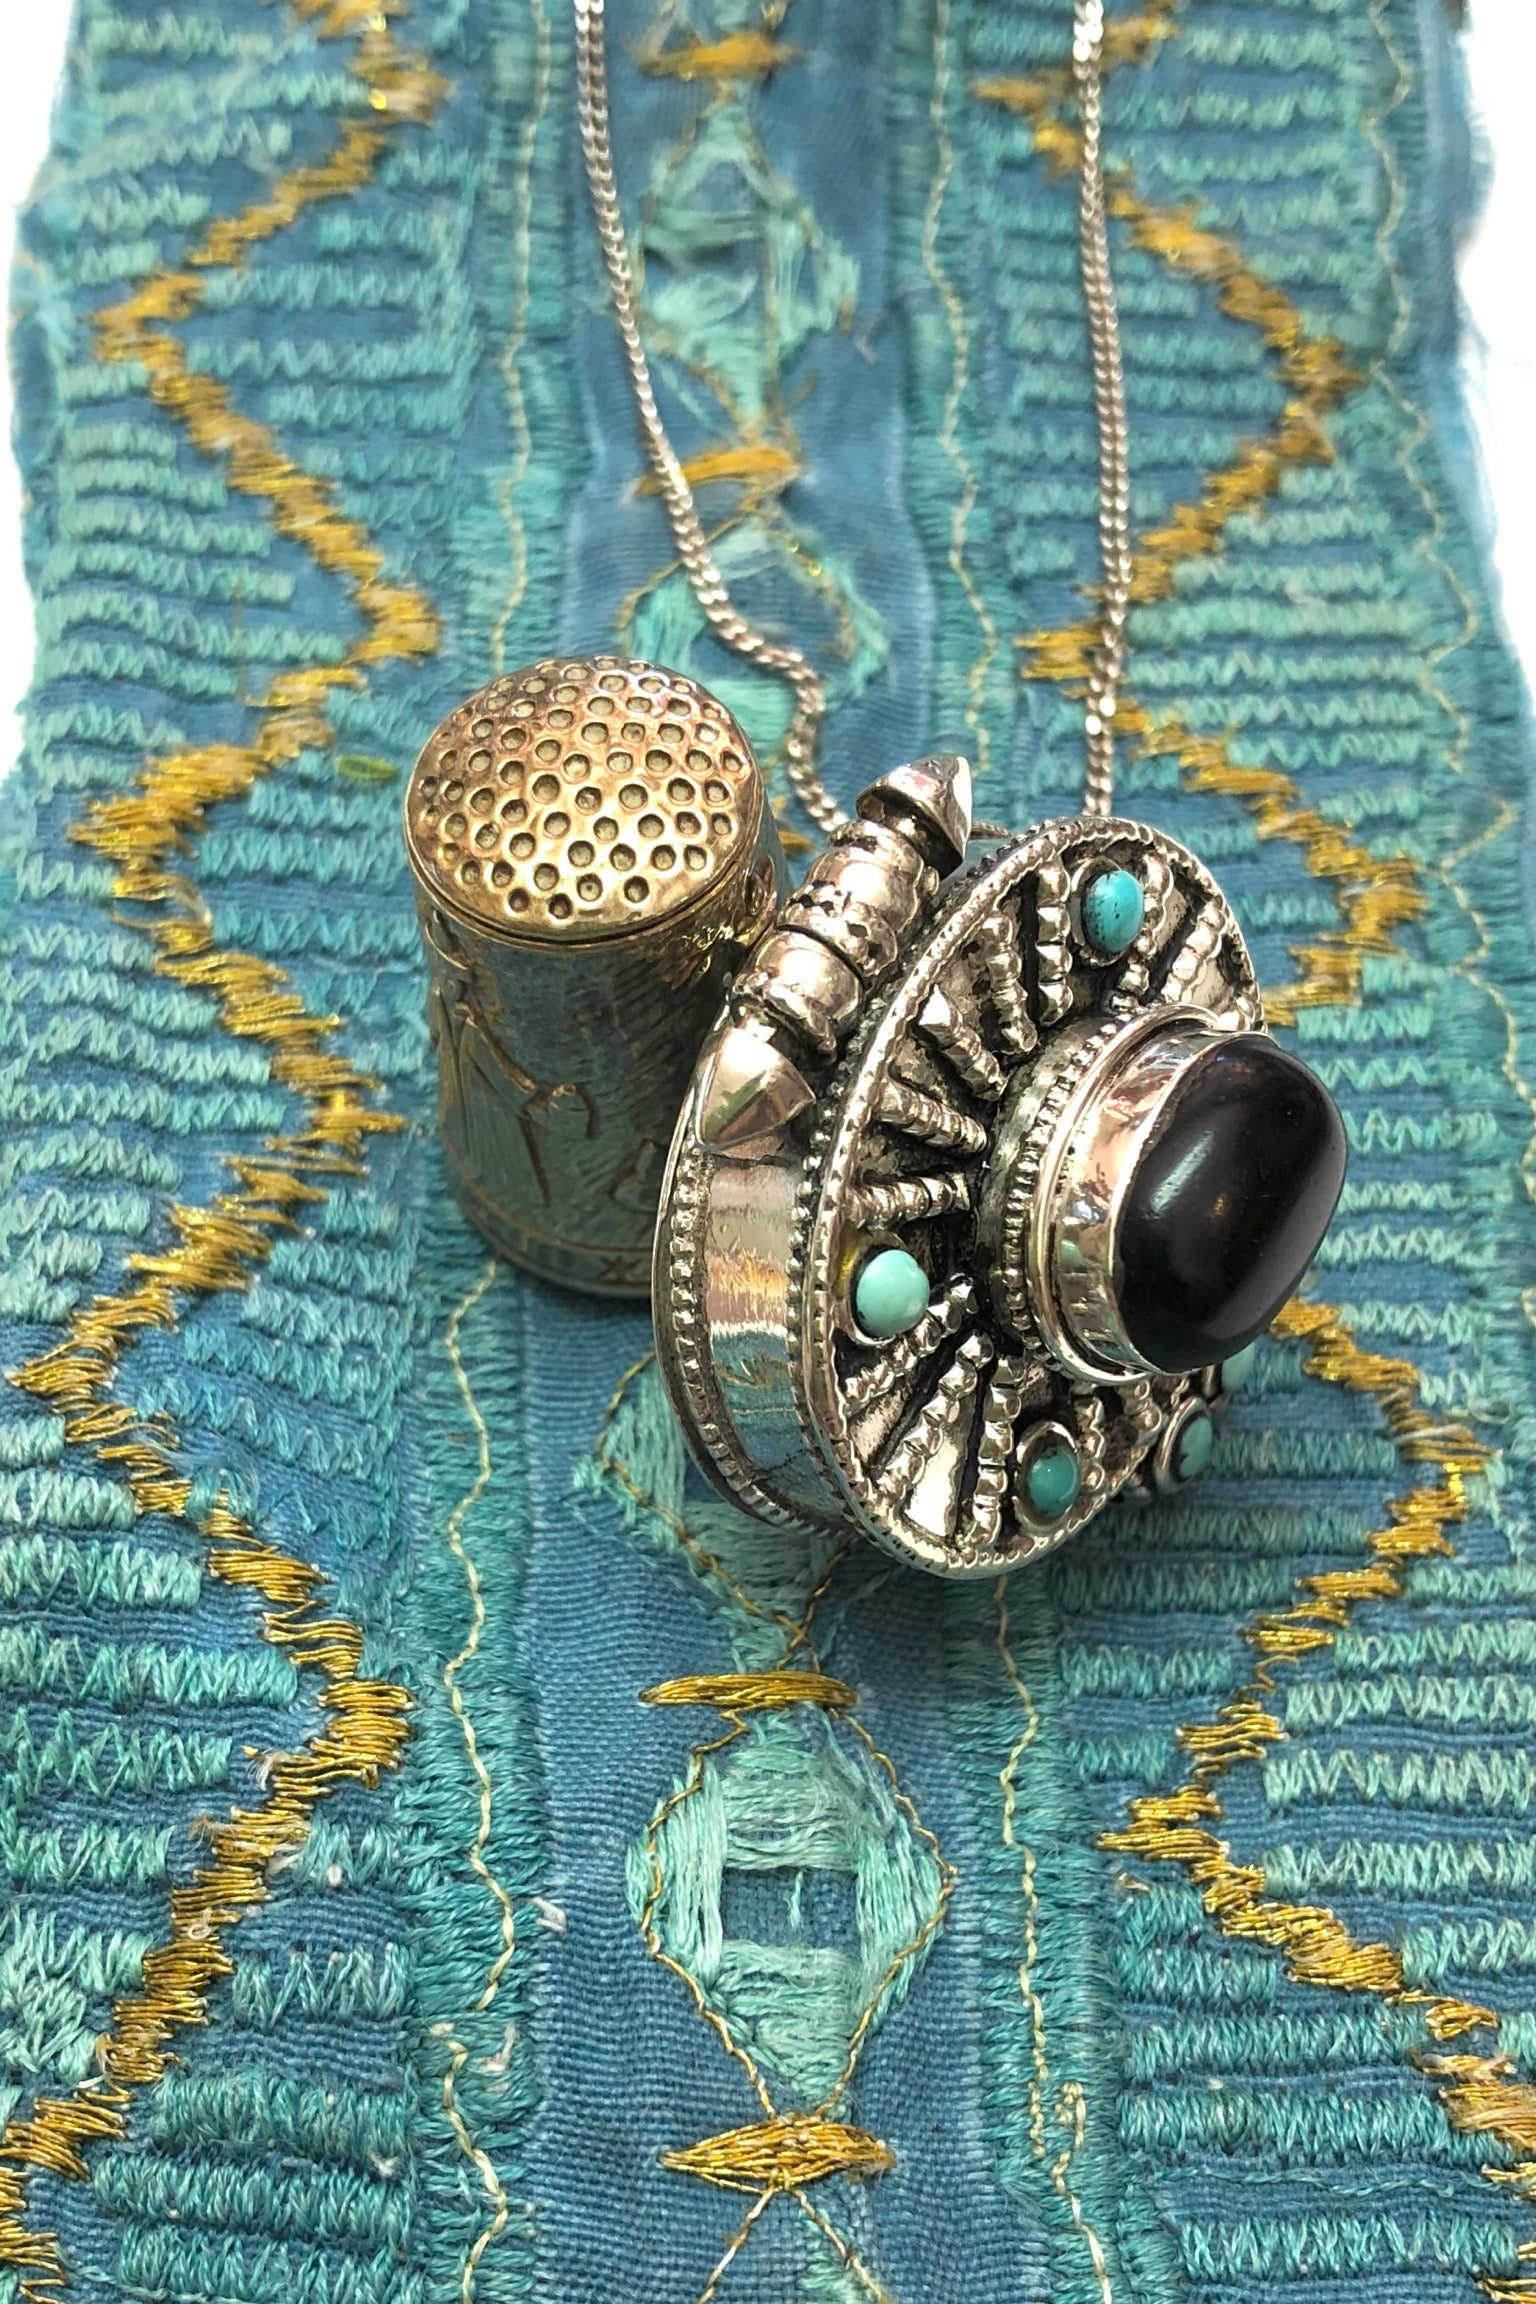 Echo Box Pendant Silver with Turquoise and Jet is a 925 silver box pendant featuring natural turquoise and black jet applied.